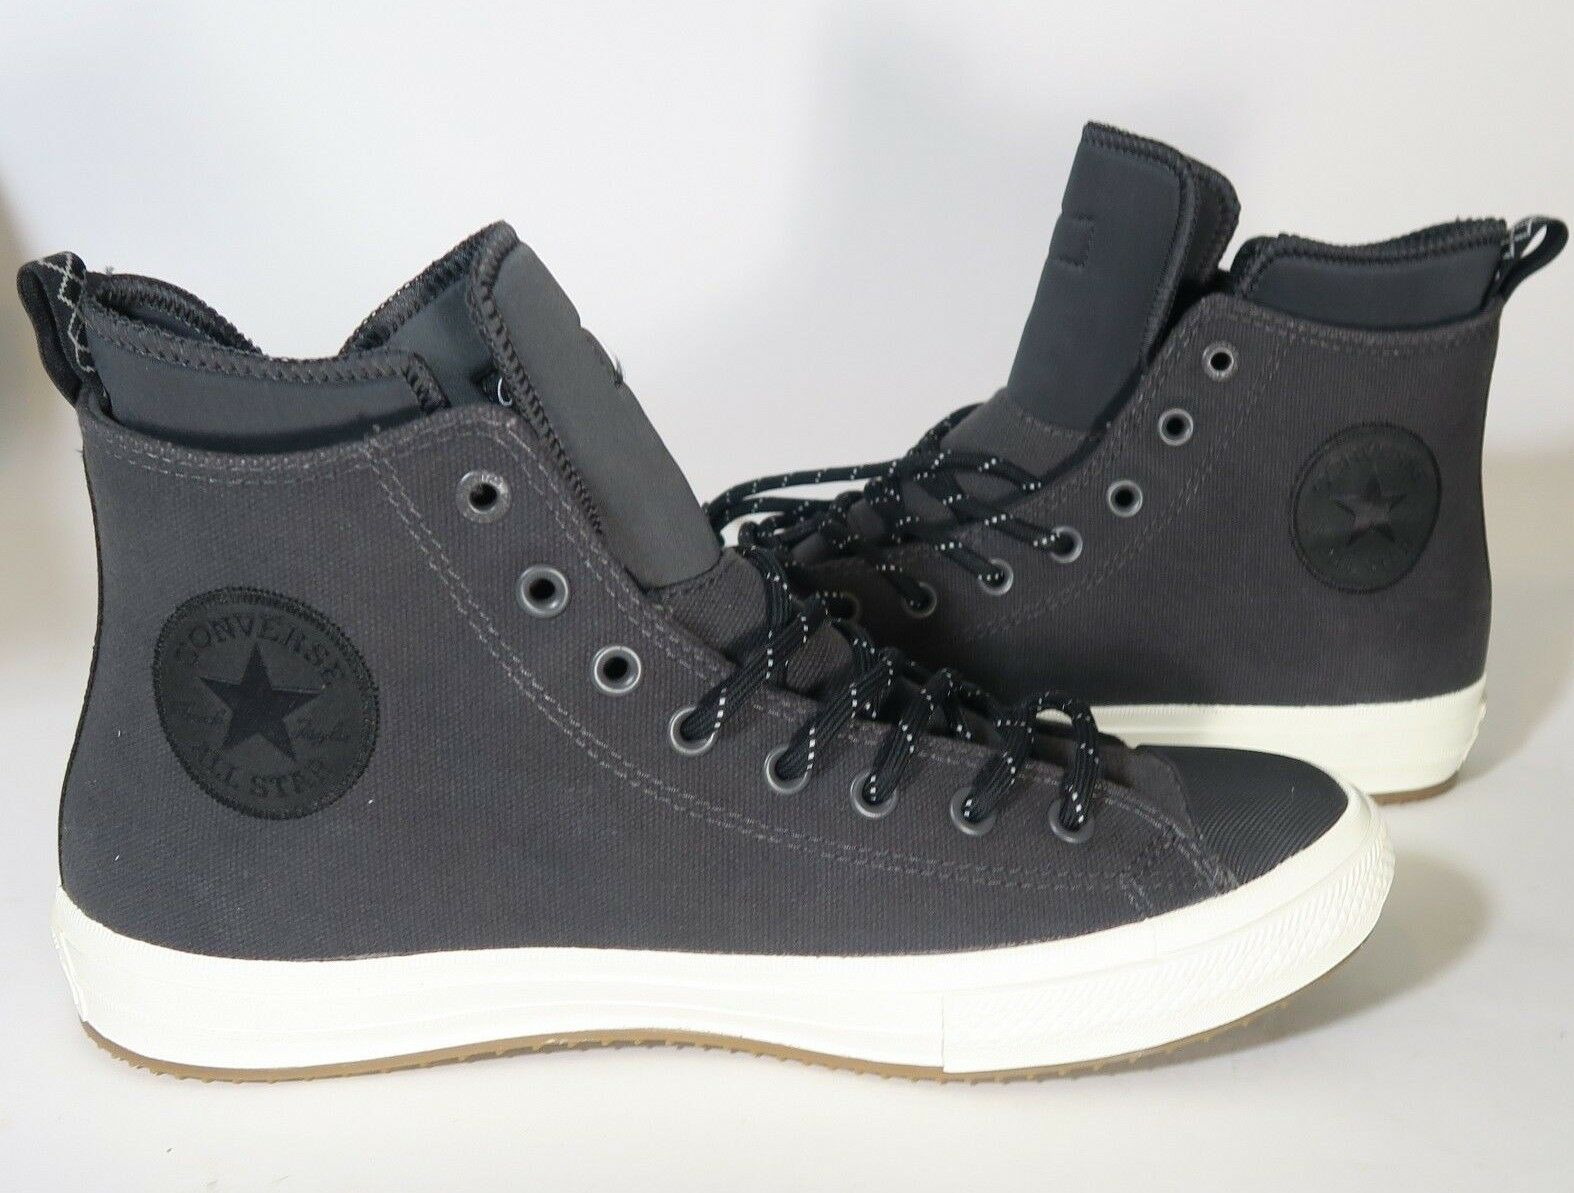 Converse Chuck Taylor All Star II Boot High Top Almost Black Sz 5.5, 11 153568C